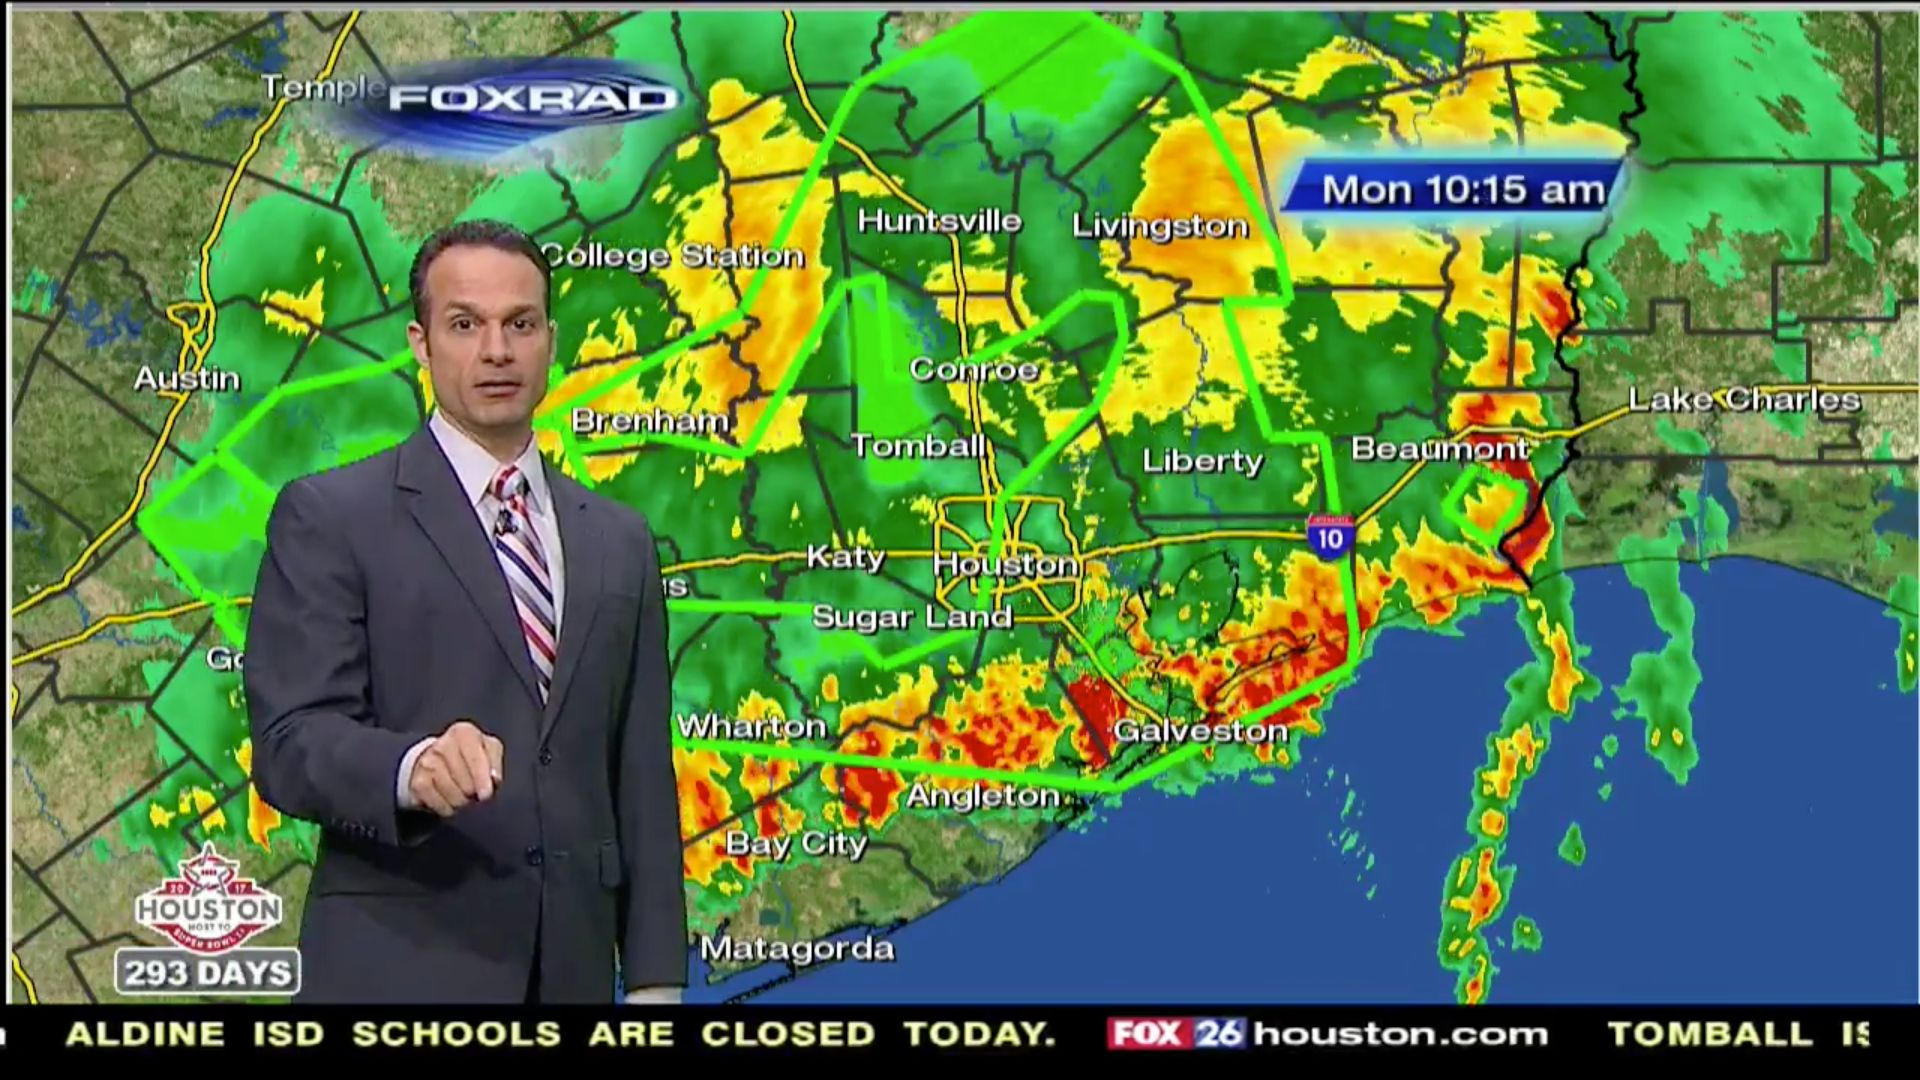 KRIV-TV meteorologist Mike Iscovitz asked viewers to inform his newsroom if they were fired for not braving Houston's rising